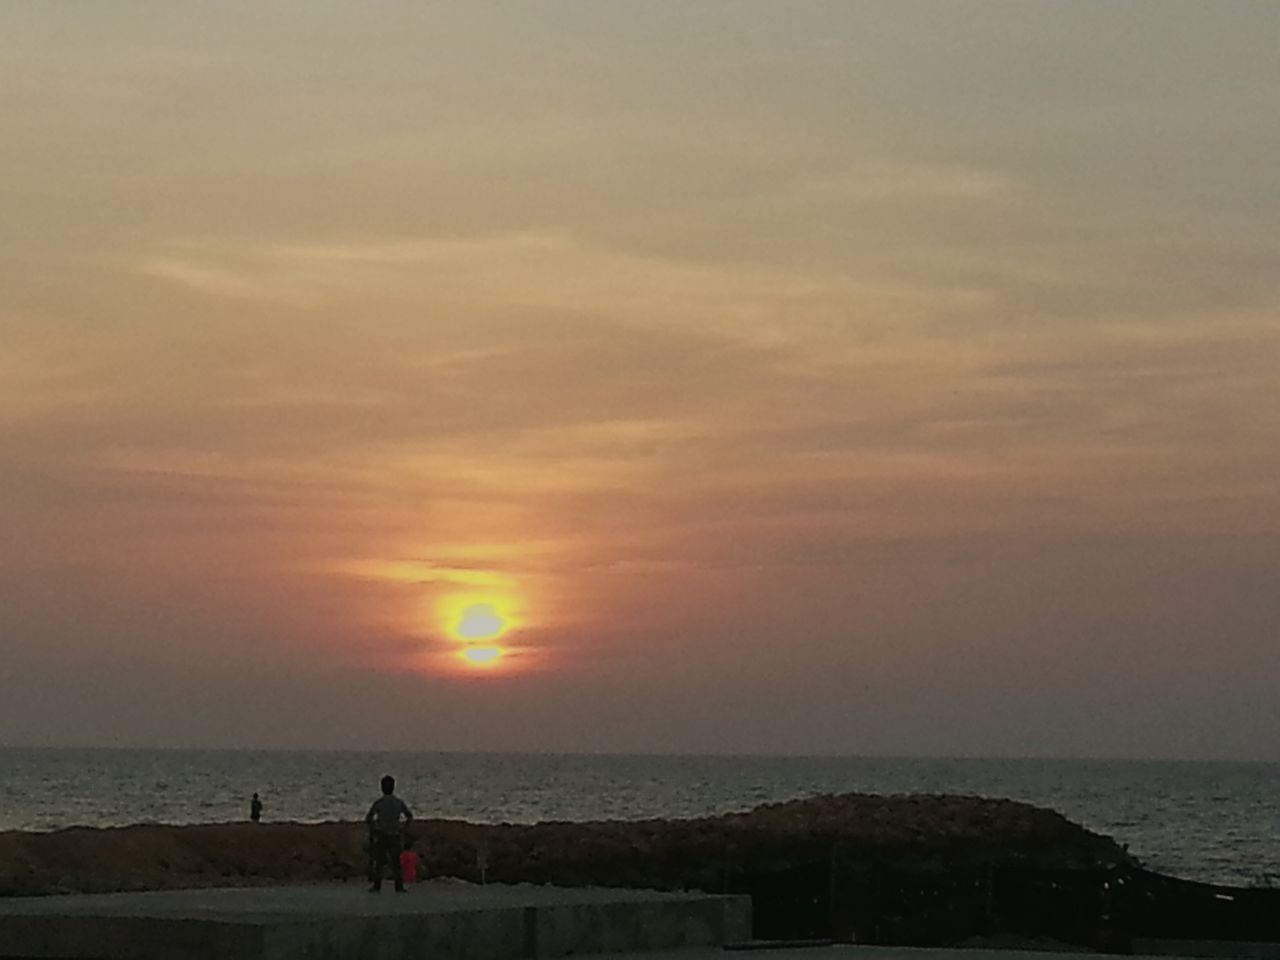 Atardecer 17 julio 2015 Relaxing Taking Photos Life Is A Beach Tunel De Crespo Construction Desde Mi Ventana... People Watching